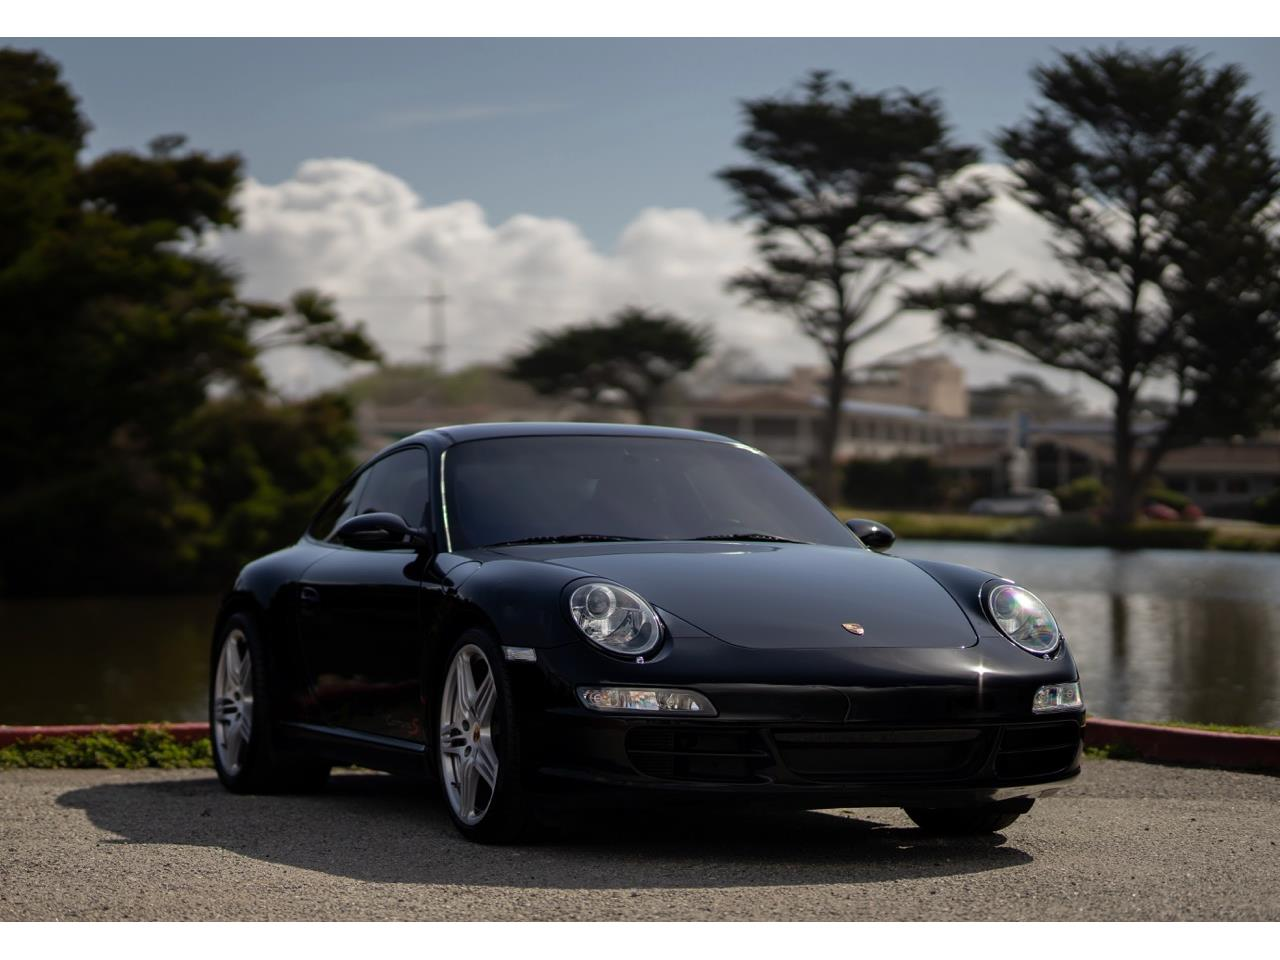 Large Picture of '08 Porsche 911 Carrera S - $59,500.00 Offered by Mohr Imports Inc. - Q67H